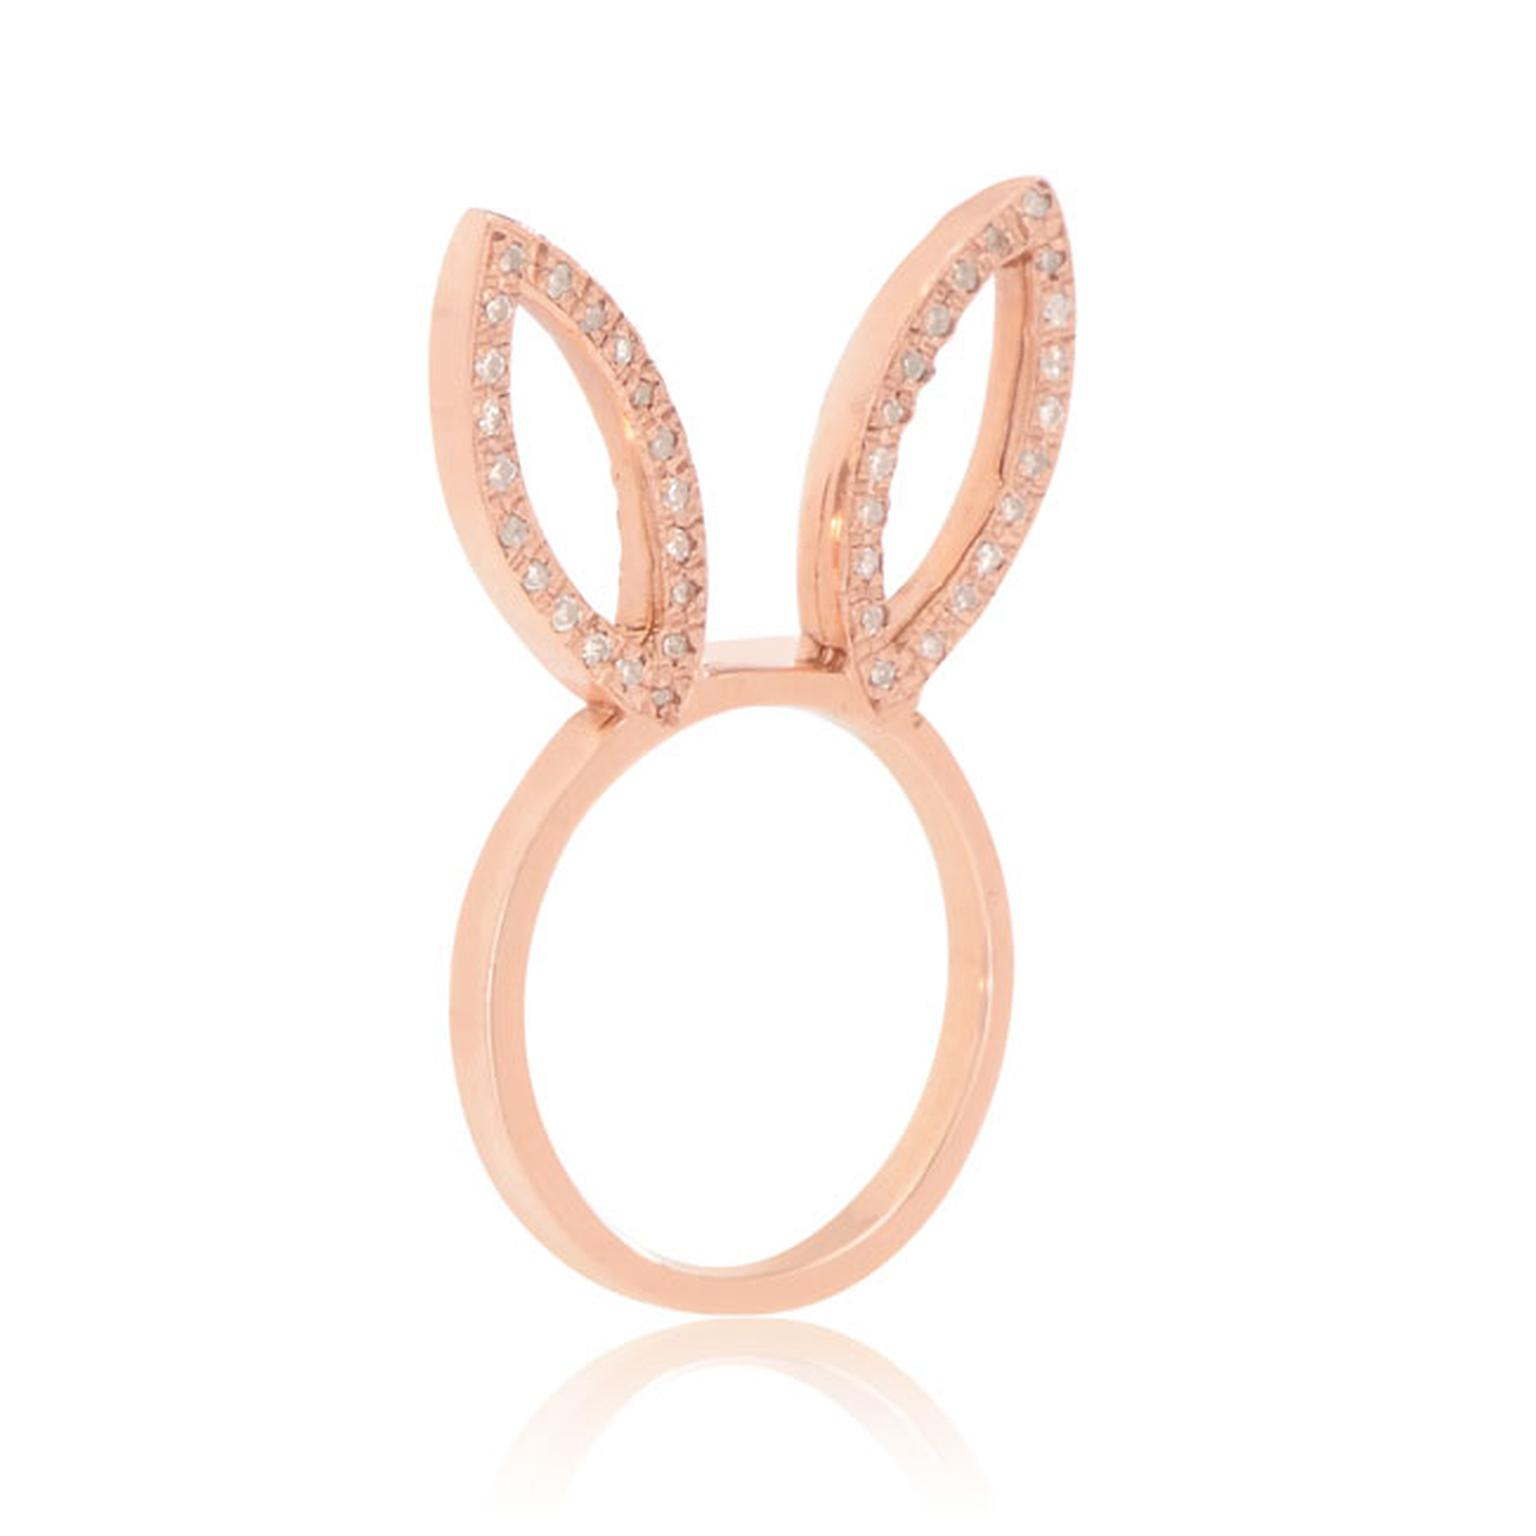 Jacquie Aiche diamond bunny ring_main